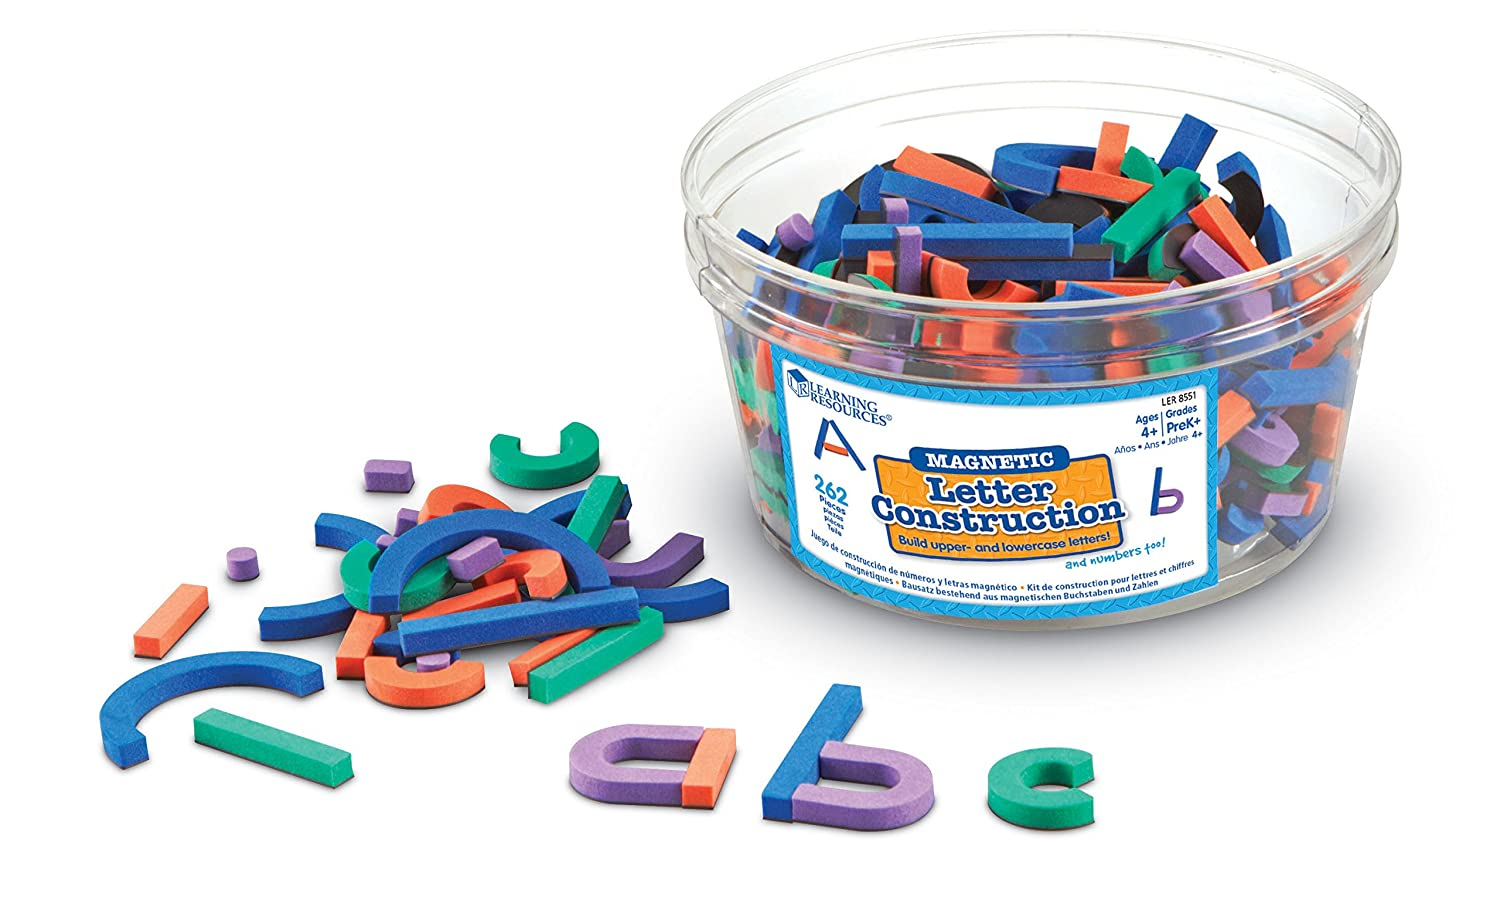 Learning Resources LER8551 Magnetic Letter Construction